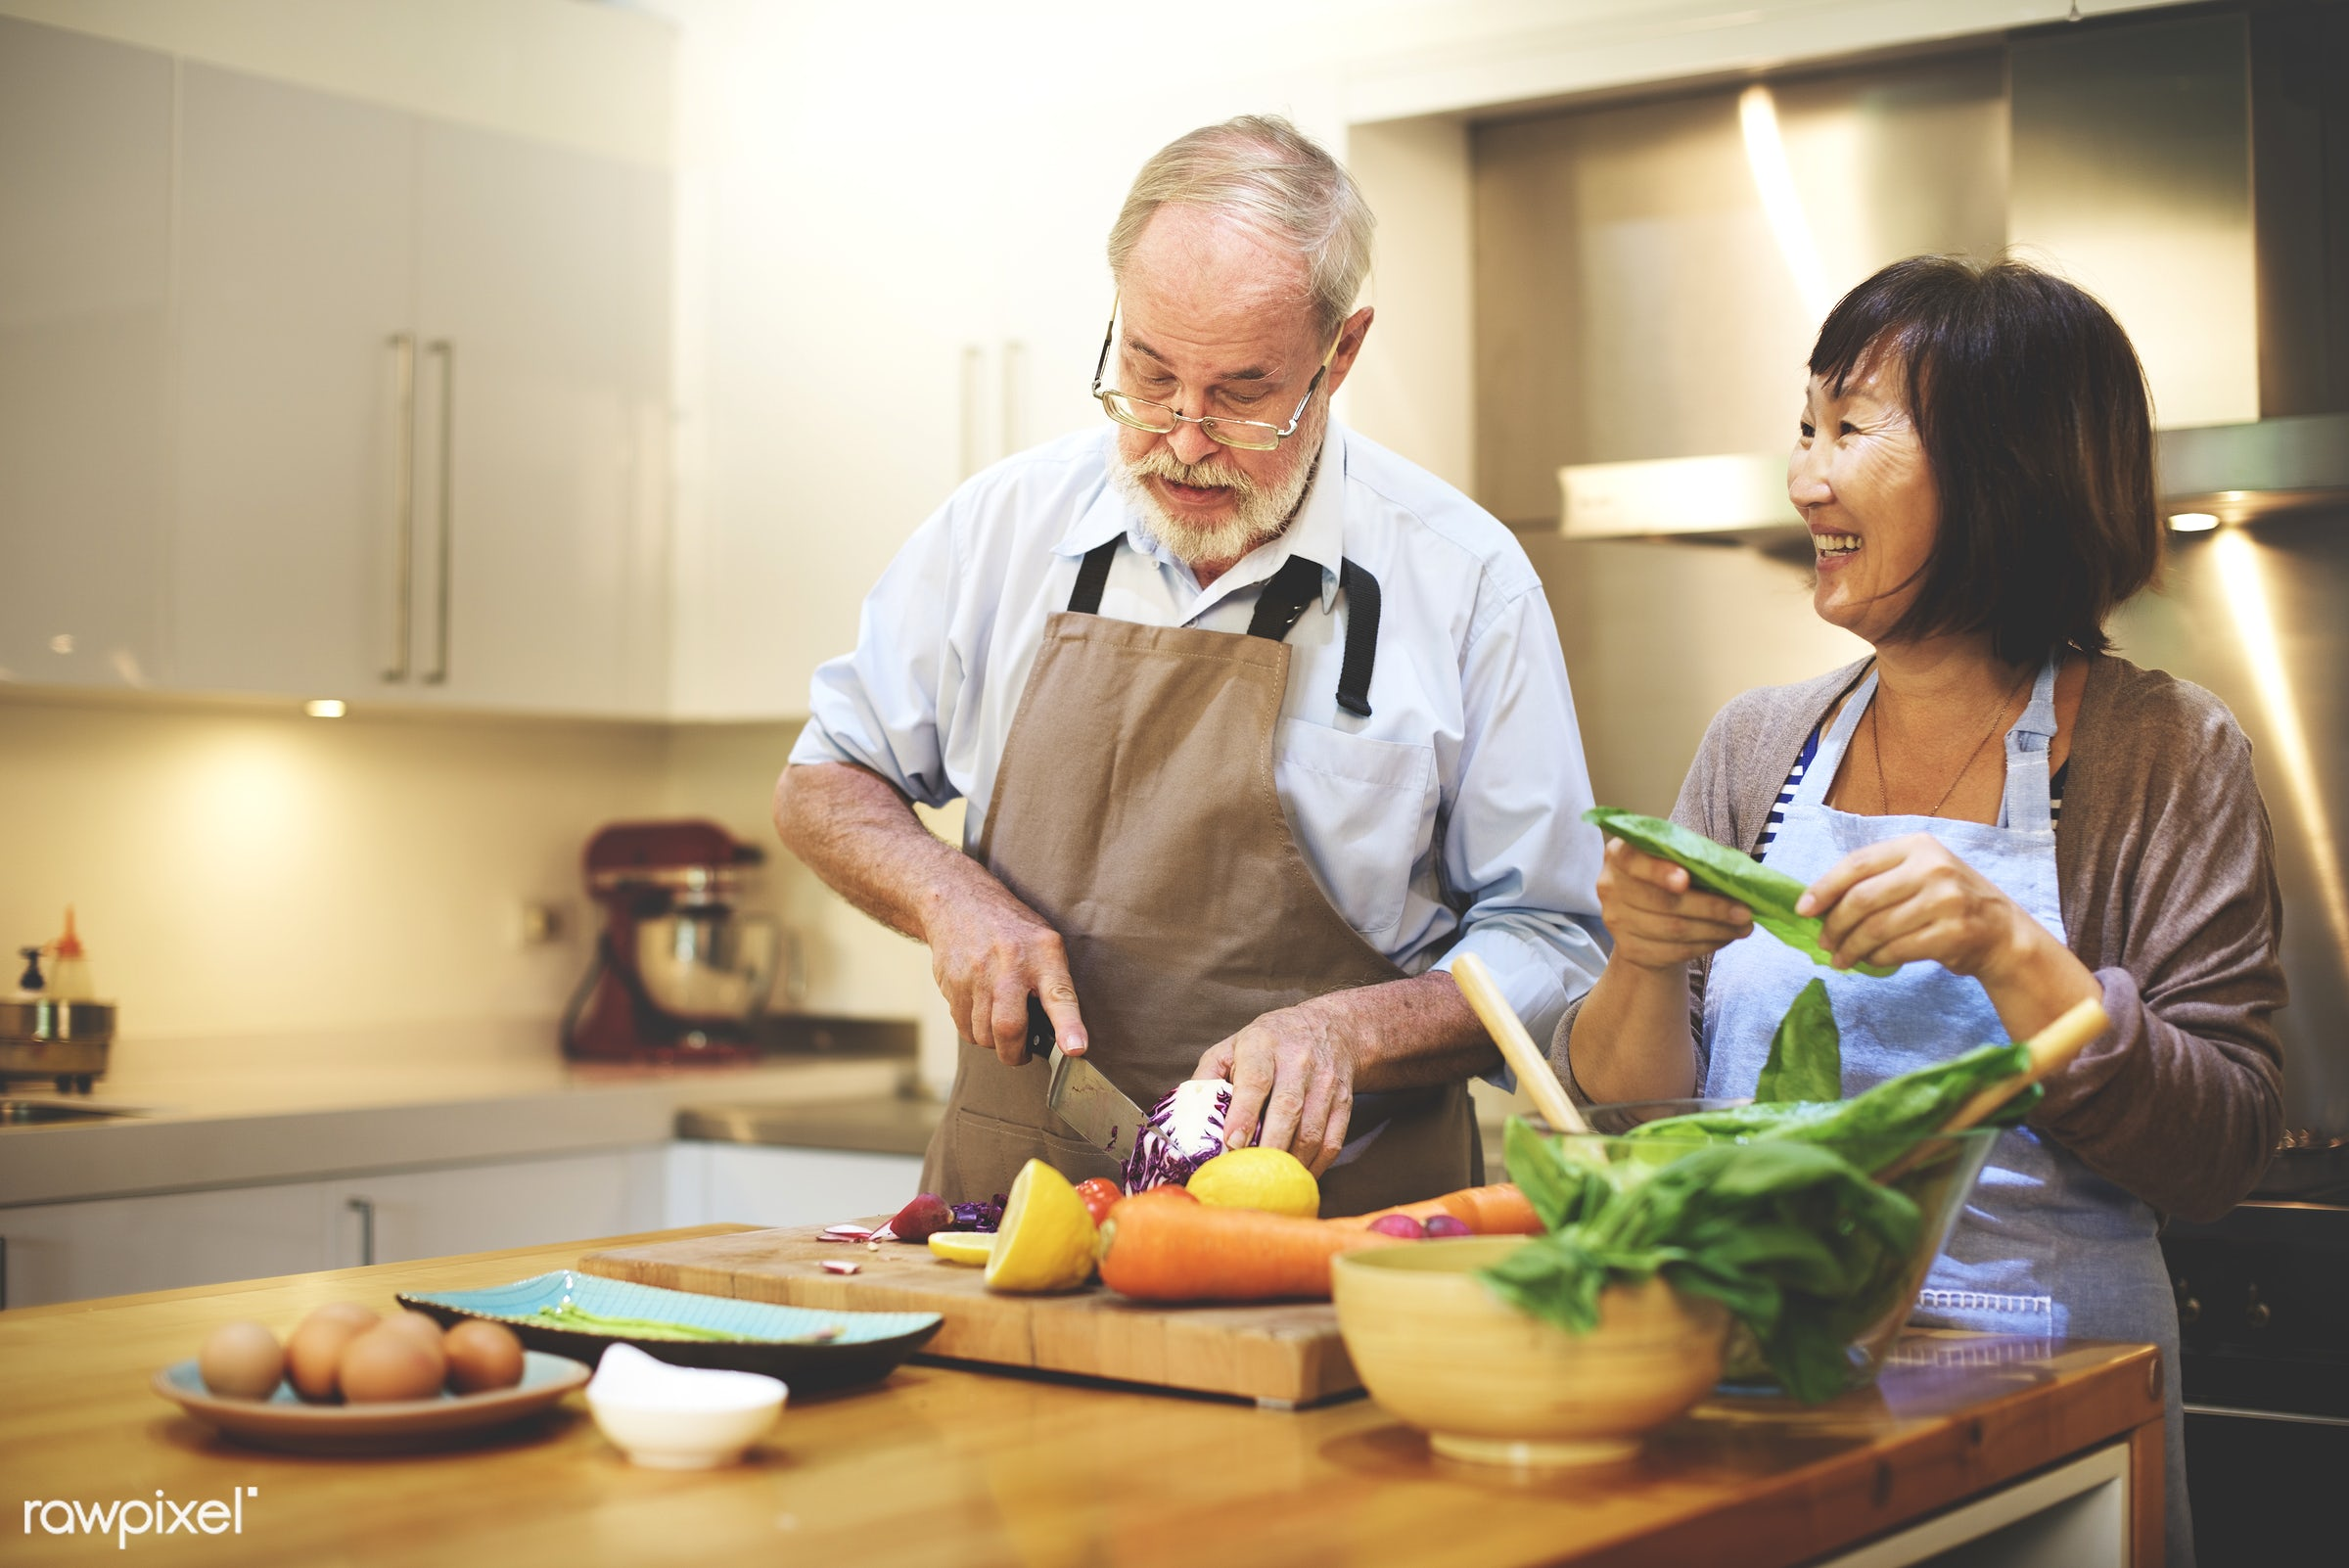 Senior couple cooking in the kitchen - activity, asian ethnicity, bonding, casual, cheerful, chef, communication, connection...